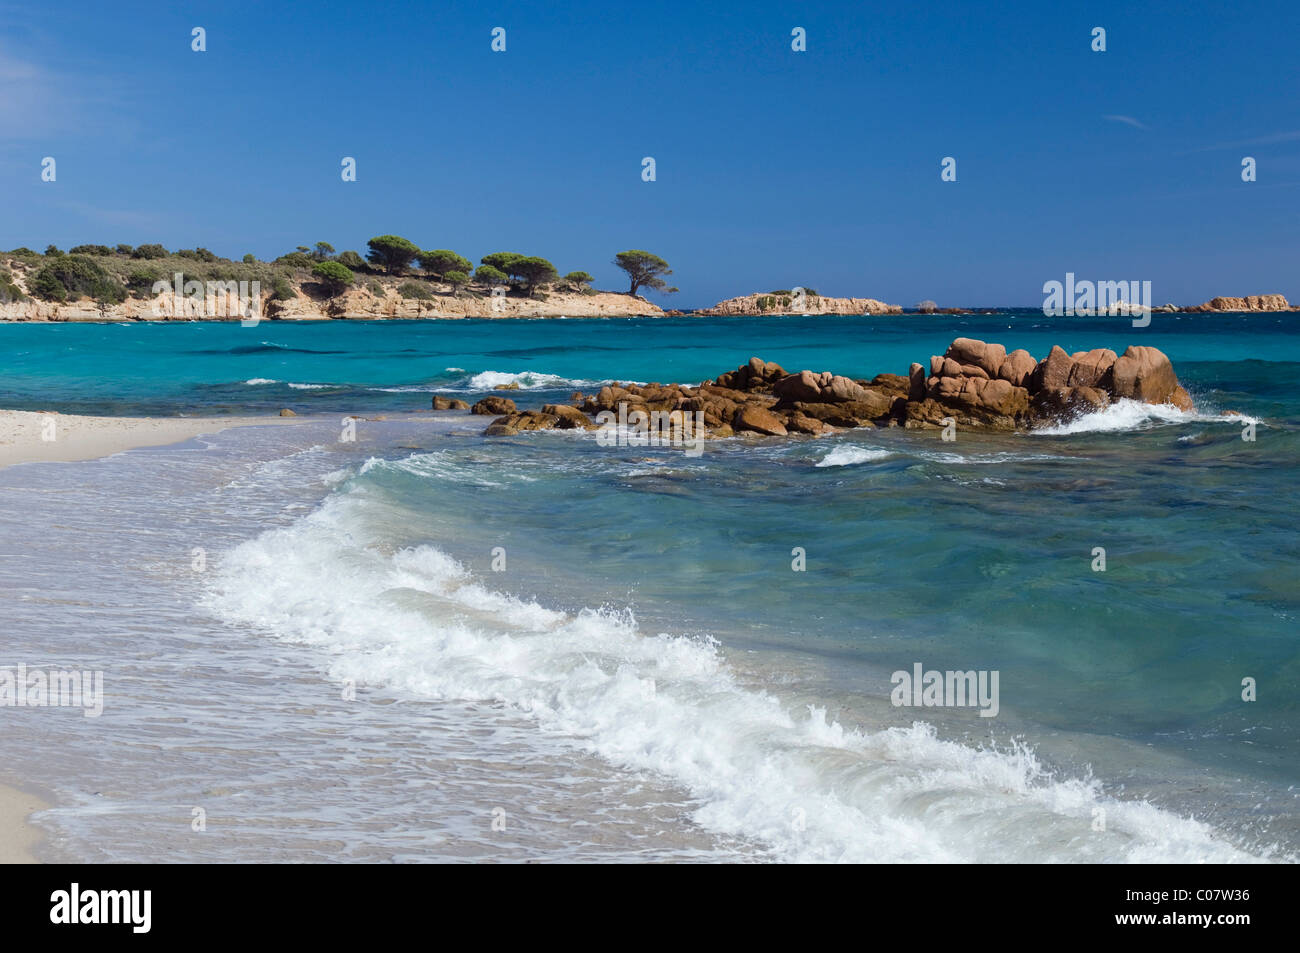 Breakers on the beach, Palombaggia, East Coast, Corsica, France, Europe - Stock Image